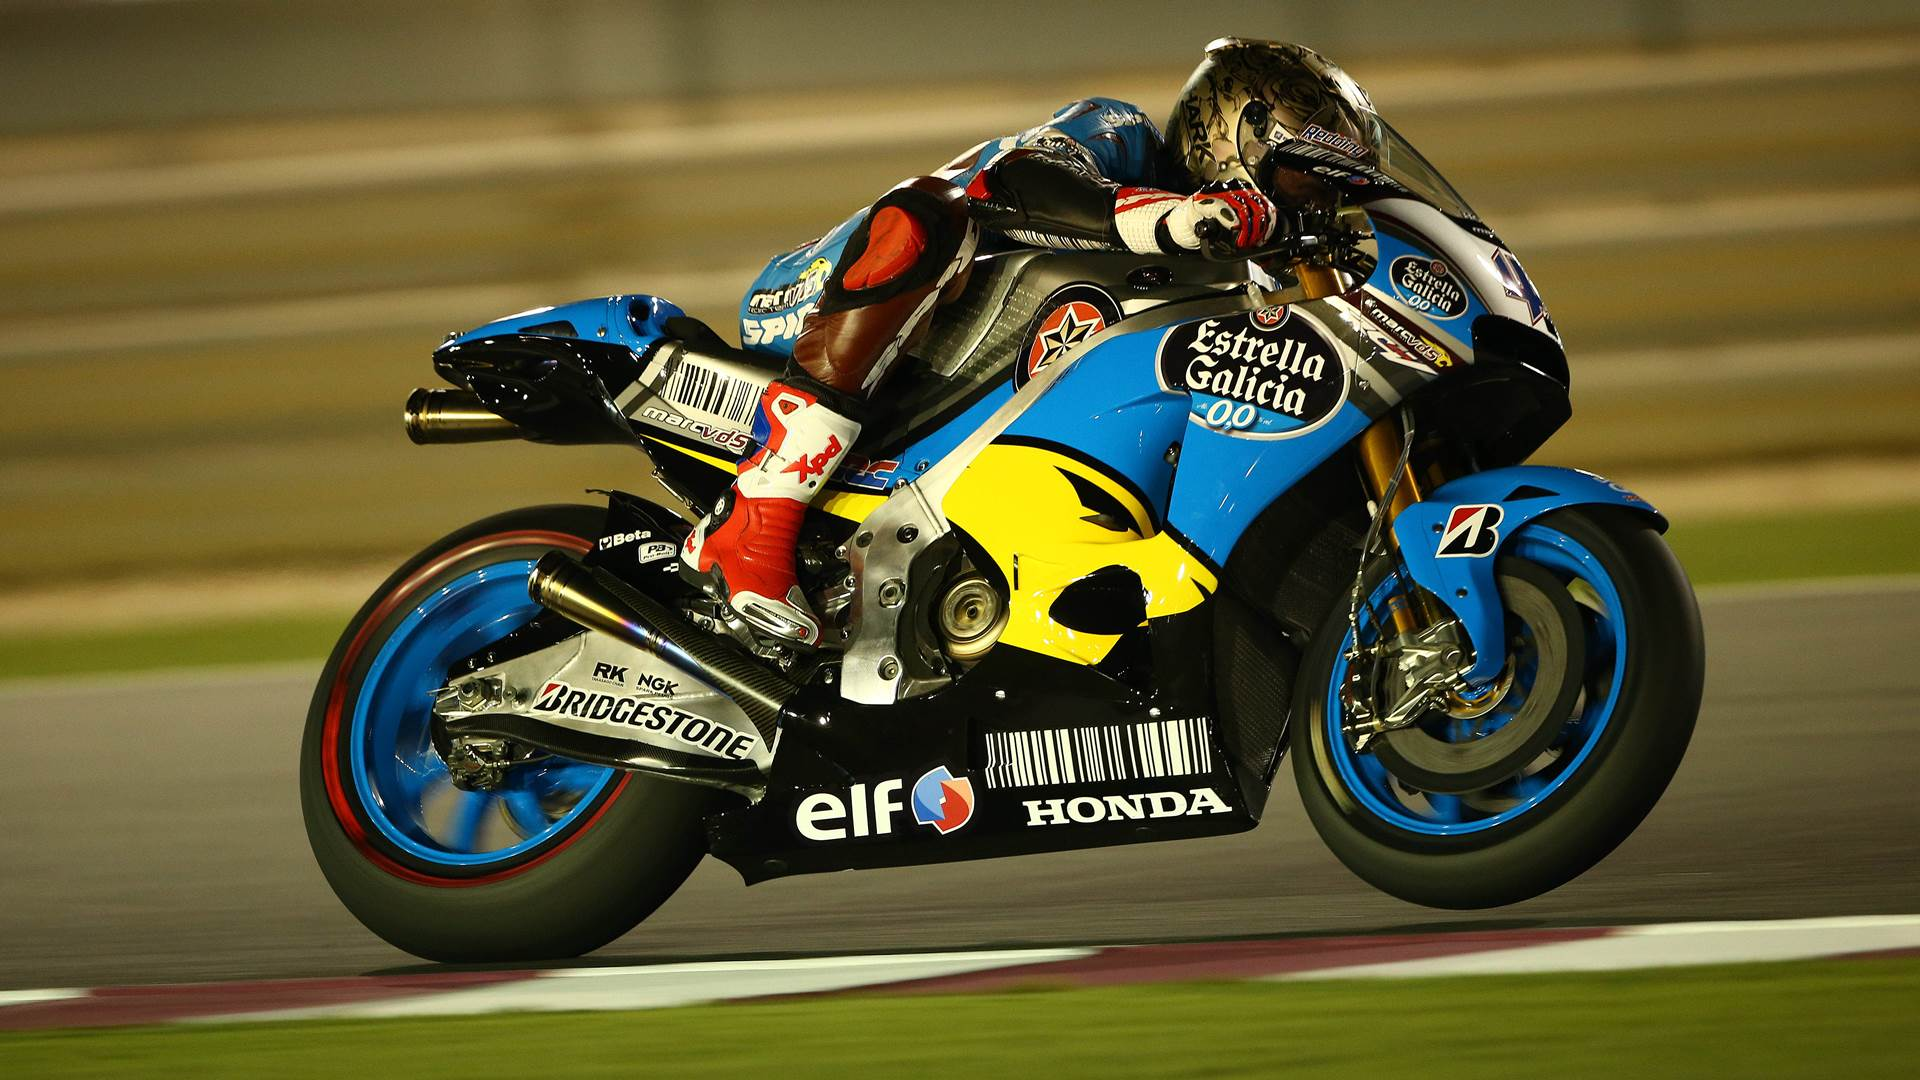 scott redding - estrella galicia - marc vds - motogp hd wallpaper